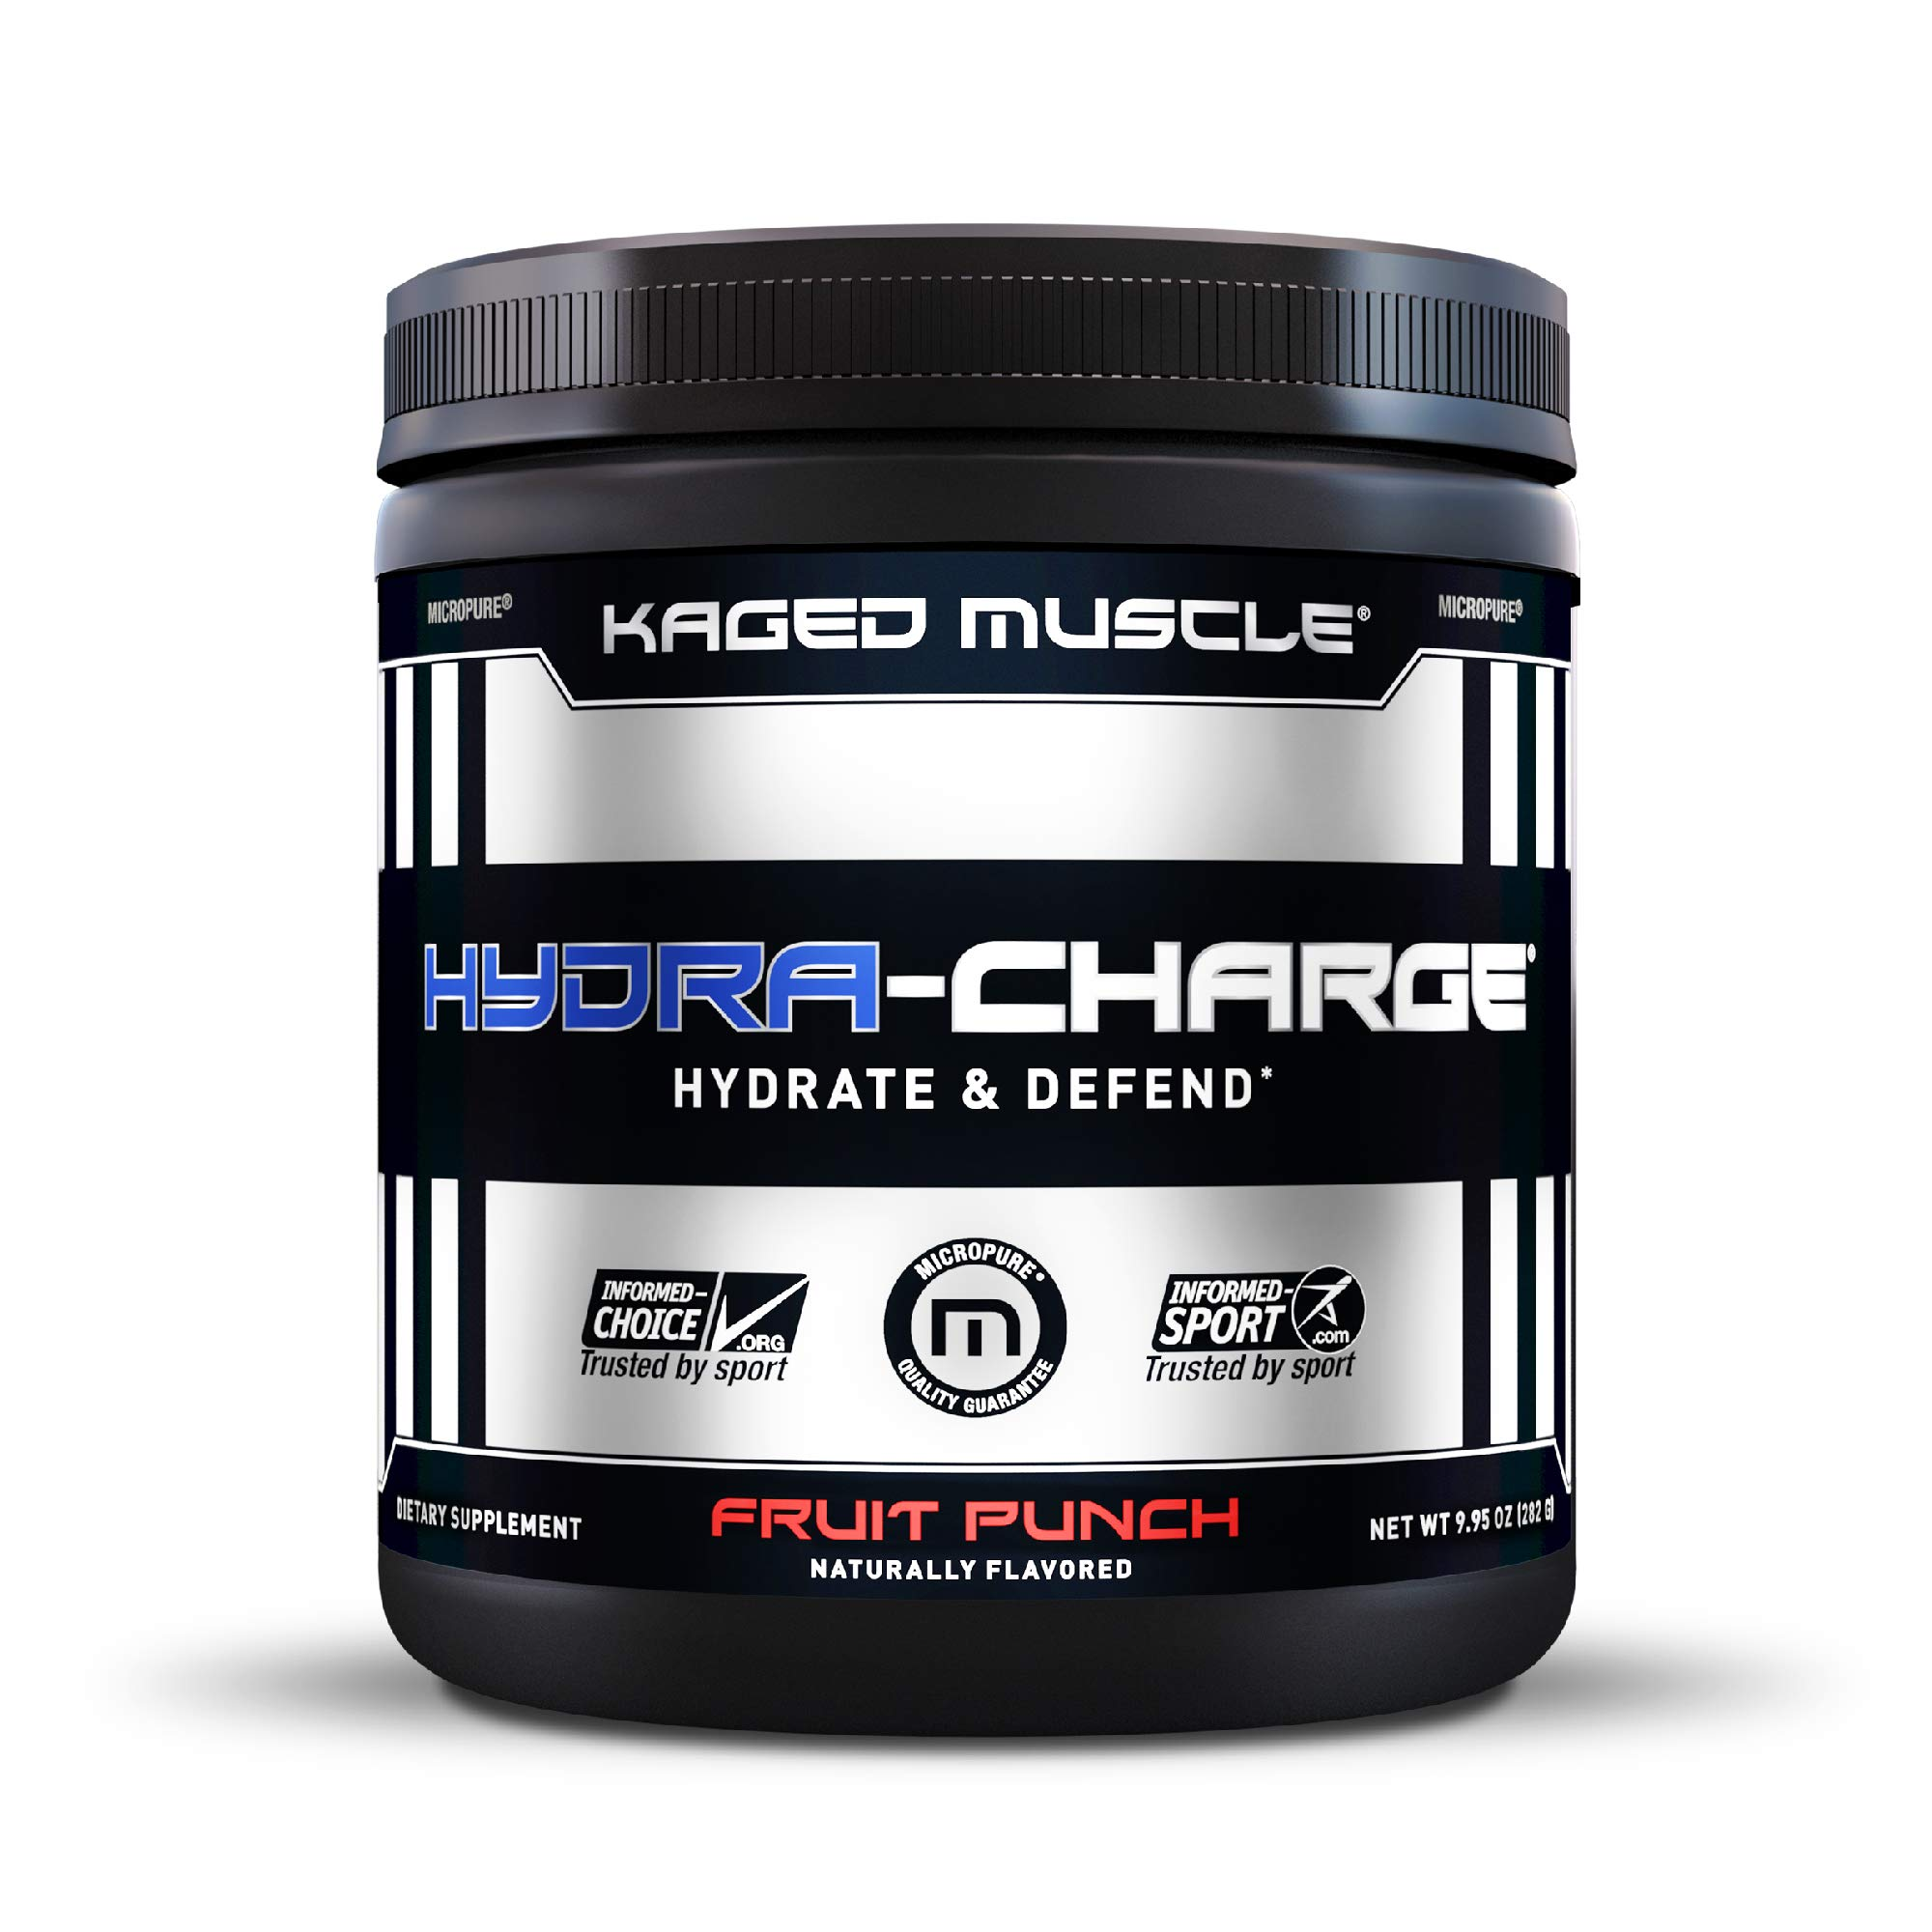 Electrolytes, Kaged Muscle Hydra-Charge Premium Electrolyte Powder, Hydration Electrolyte Powder, Pre Workout, Post Workout, Intra Workout, Fruit Punch, 60 Servings